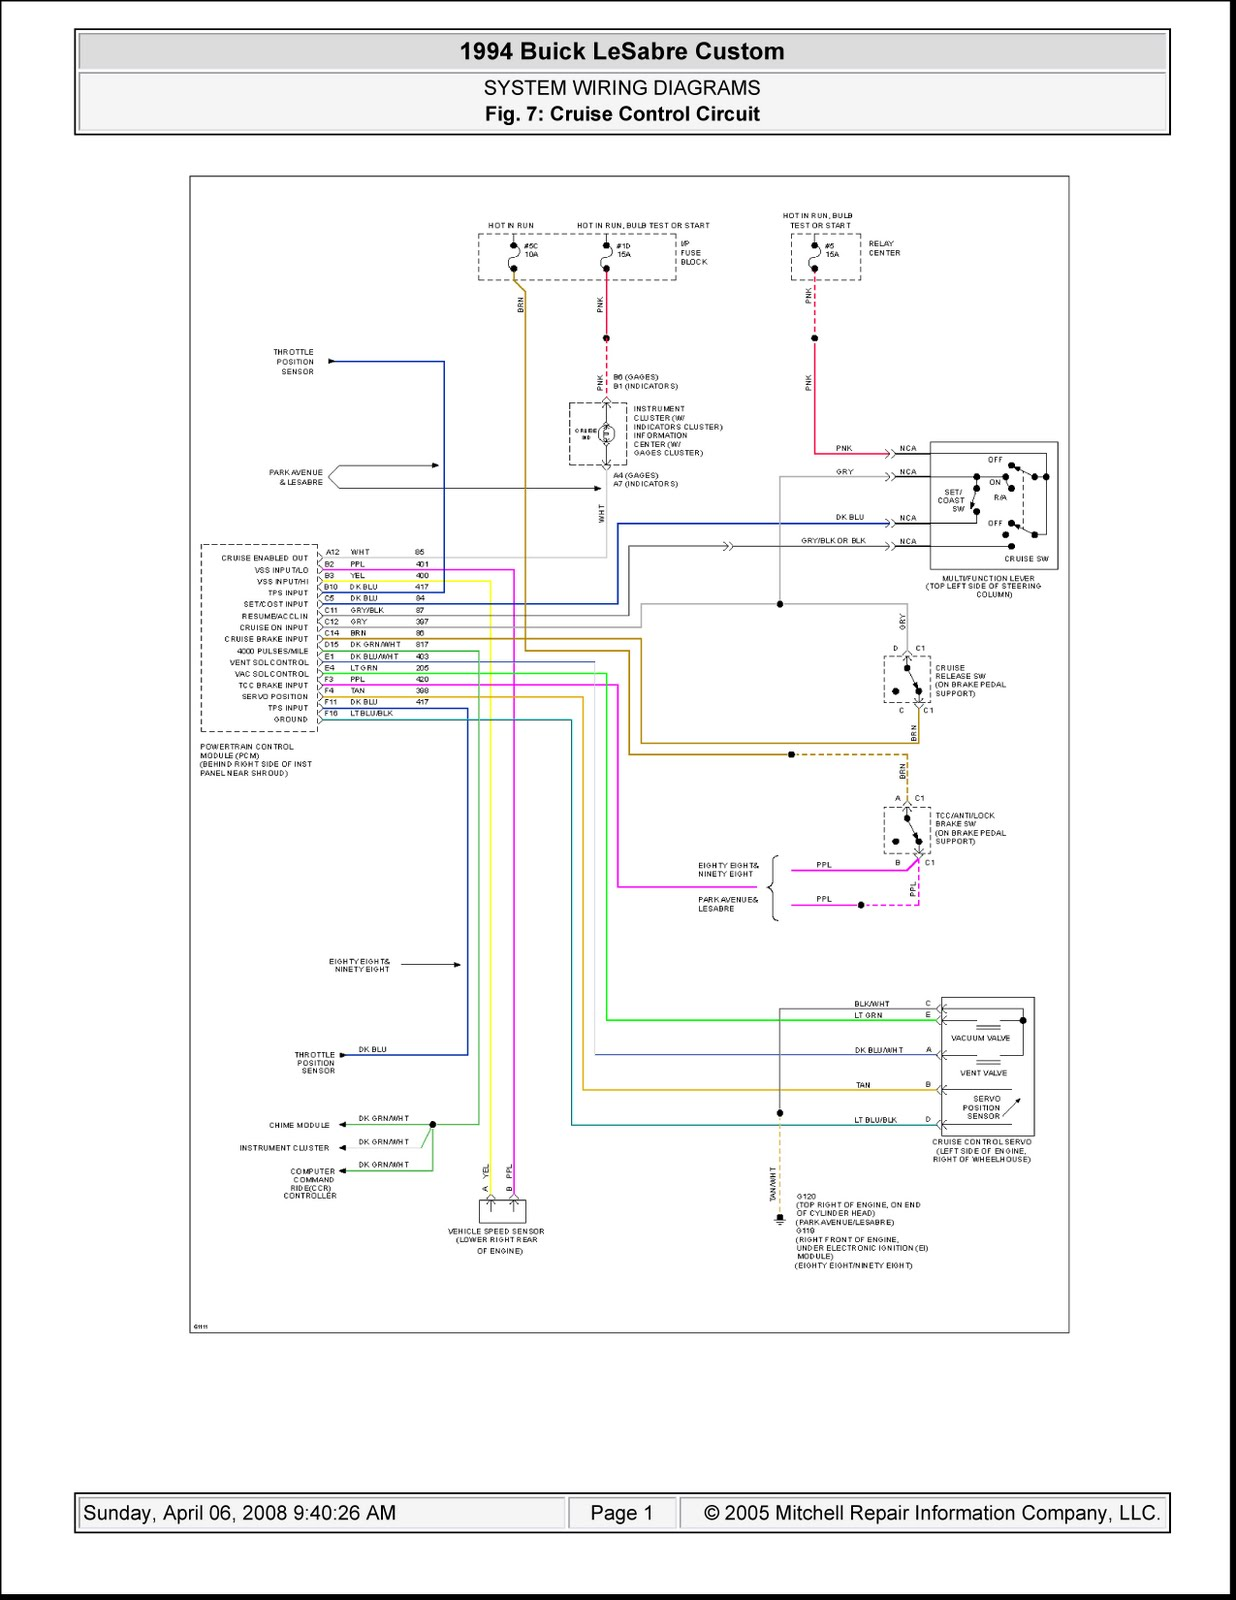 1994 Buick Lesabre Custom System Wiring Diagrams Cruise Control 2011 Grand Cherokee Diagram Circuit